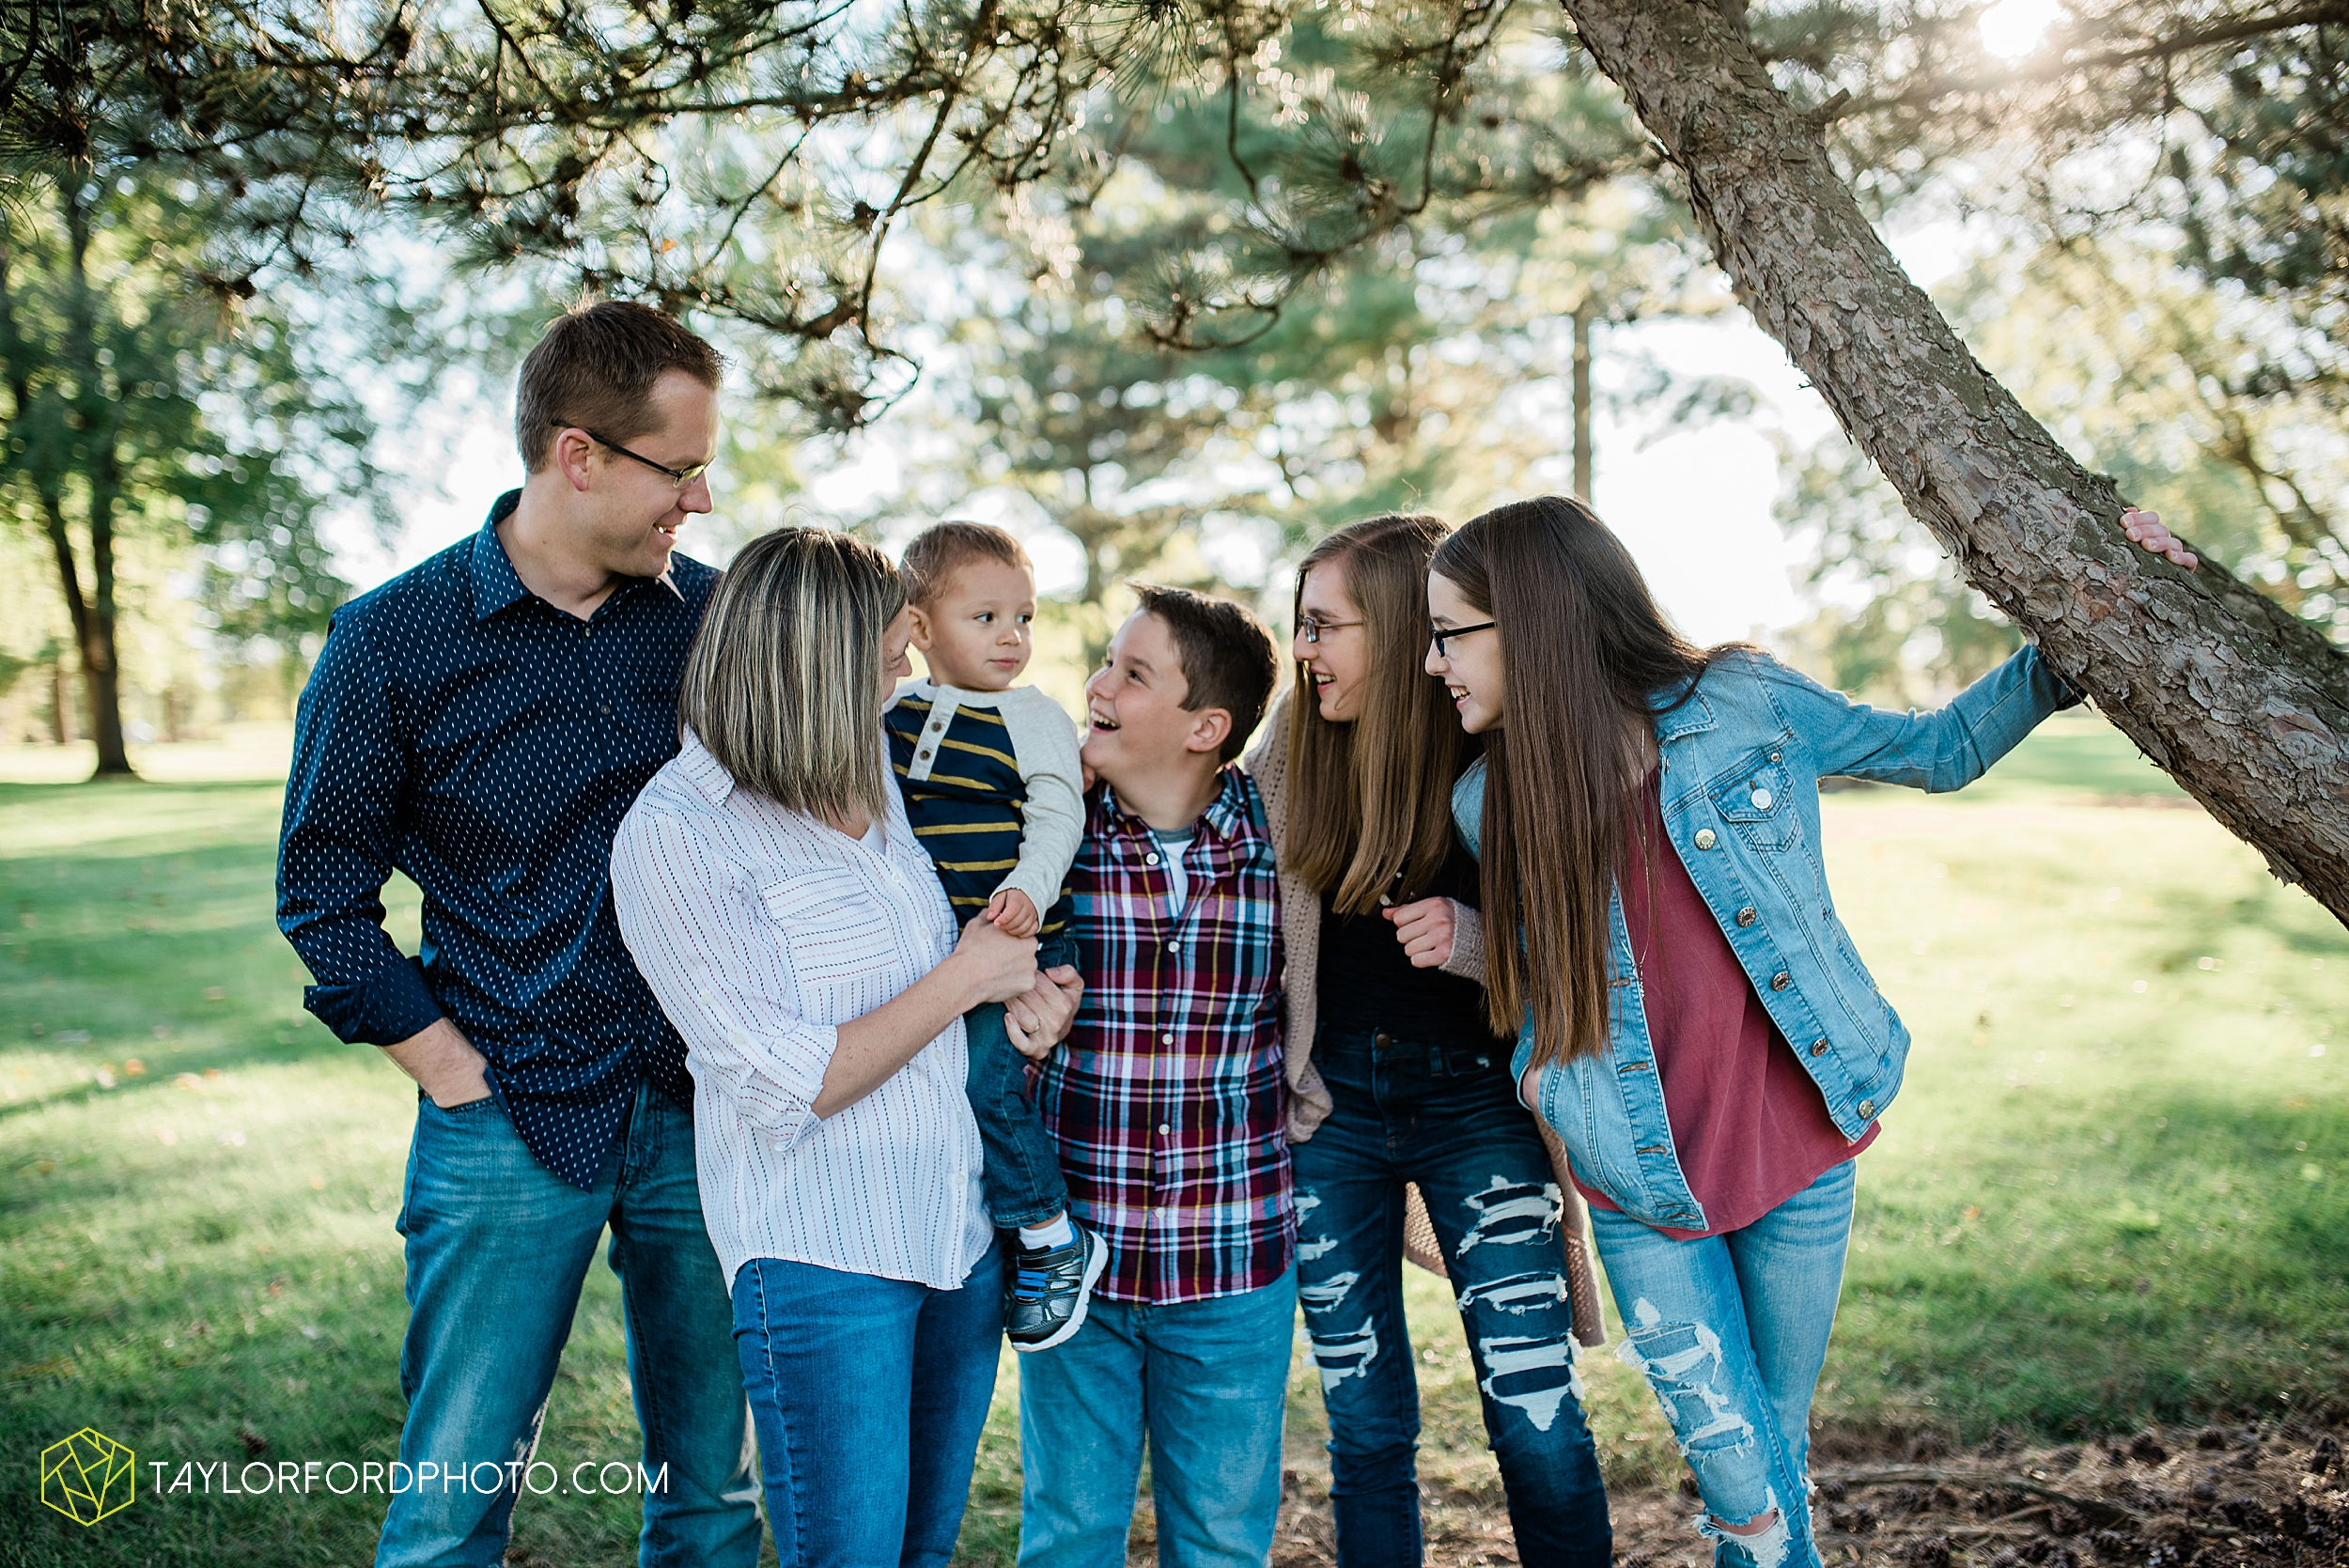 northwest-van-wert-ohio-backyard-at-home-outdoor-natural-light-stollerfamily-photographer-taylor-ford-photography_1238.jpg